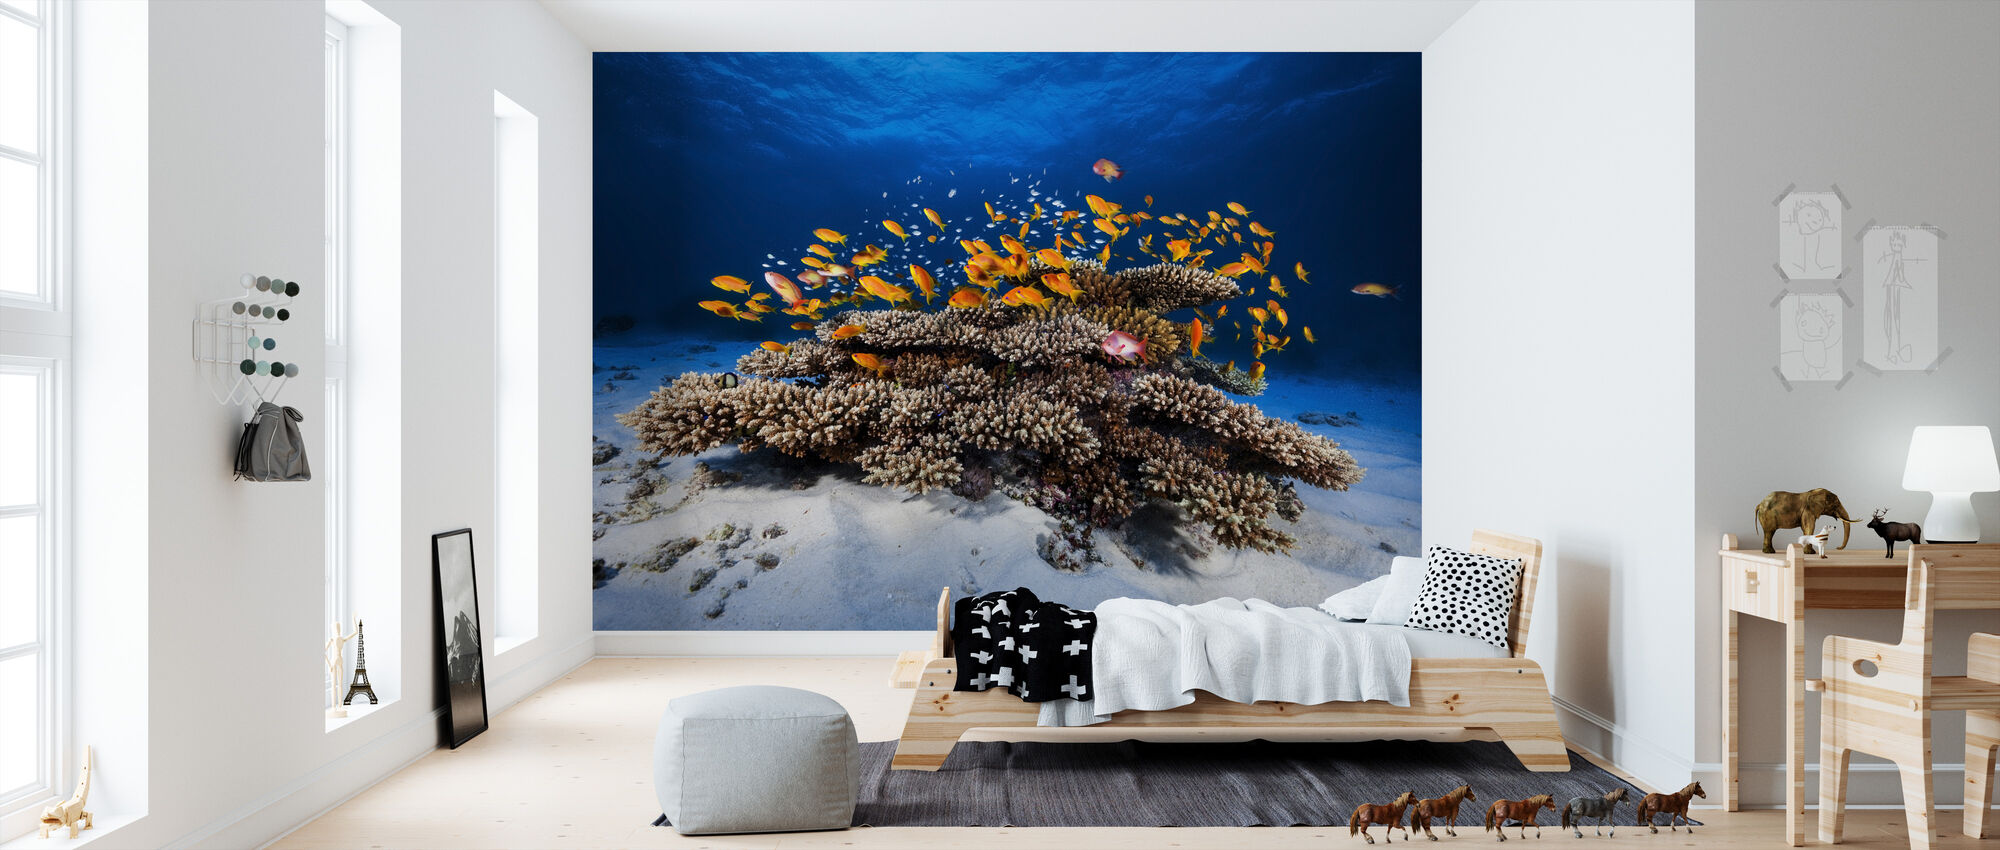 Marine Life - Wallpaper - Kids Room